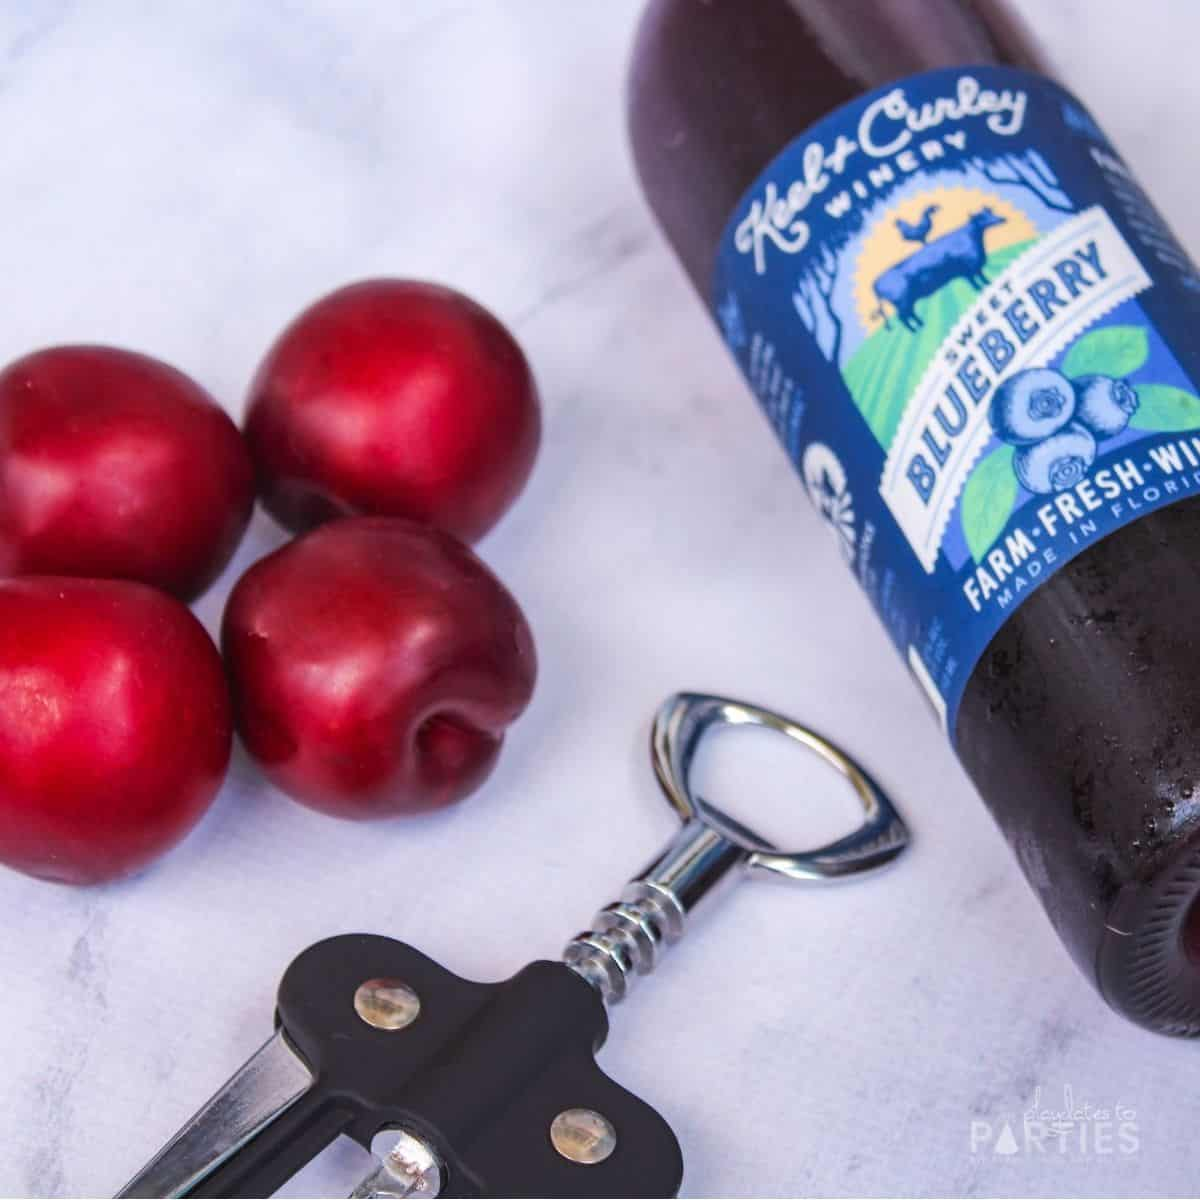 a bottle of wine and four plums on a marble surface next to a wine bottle opener